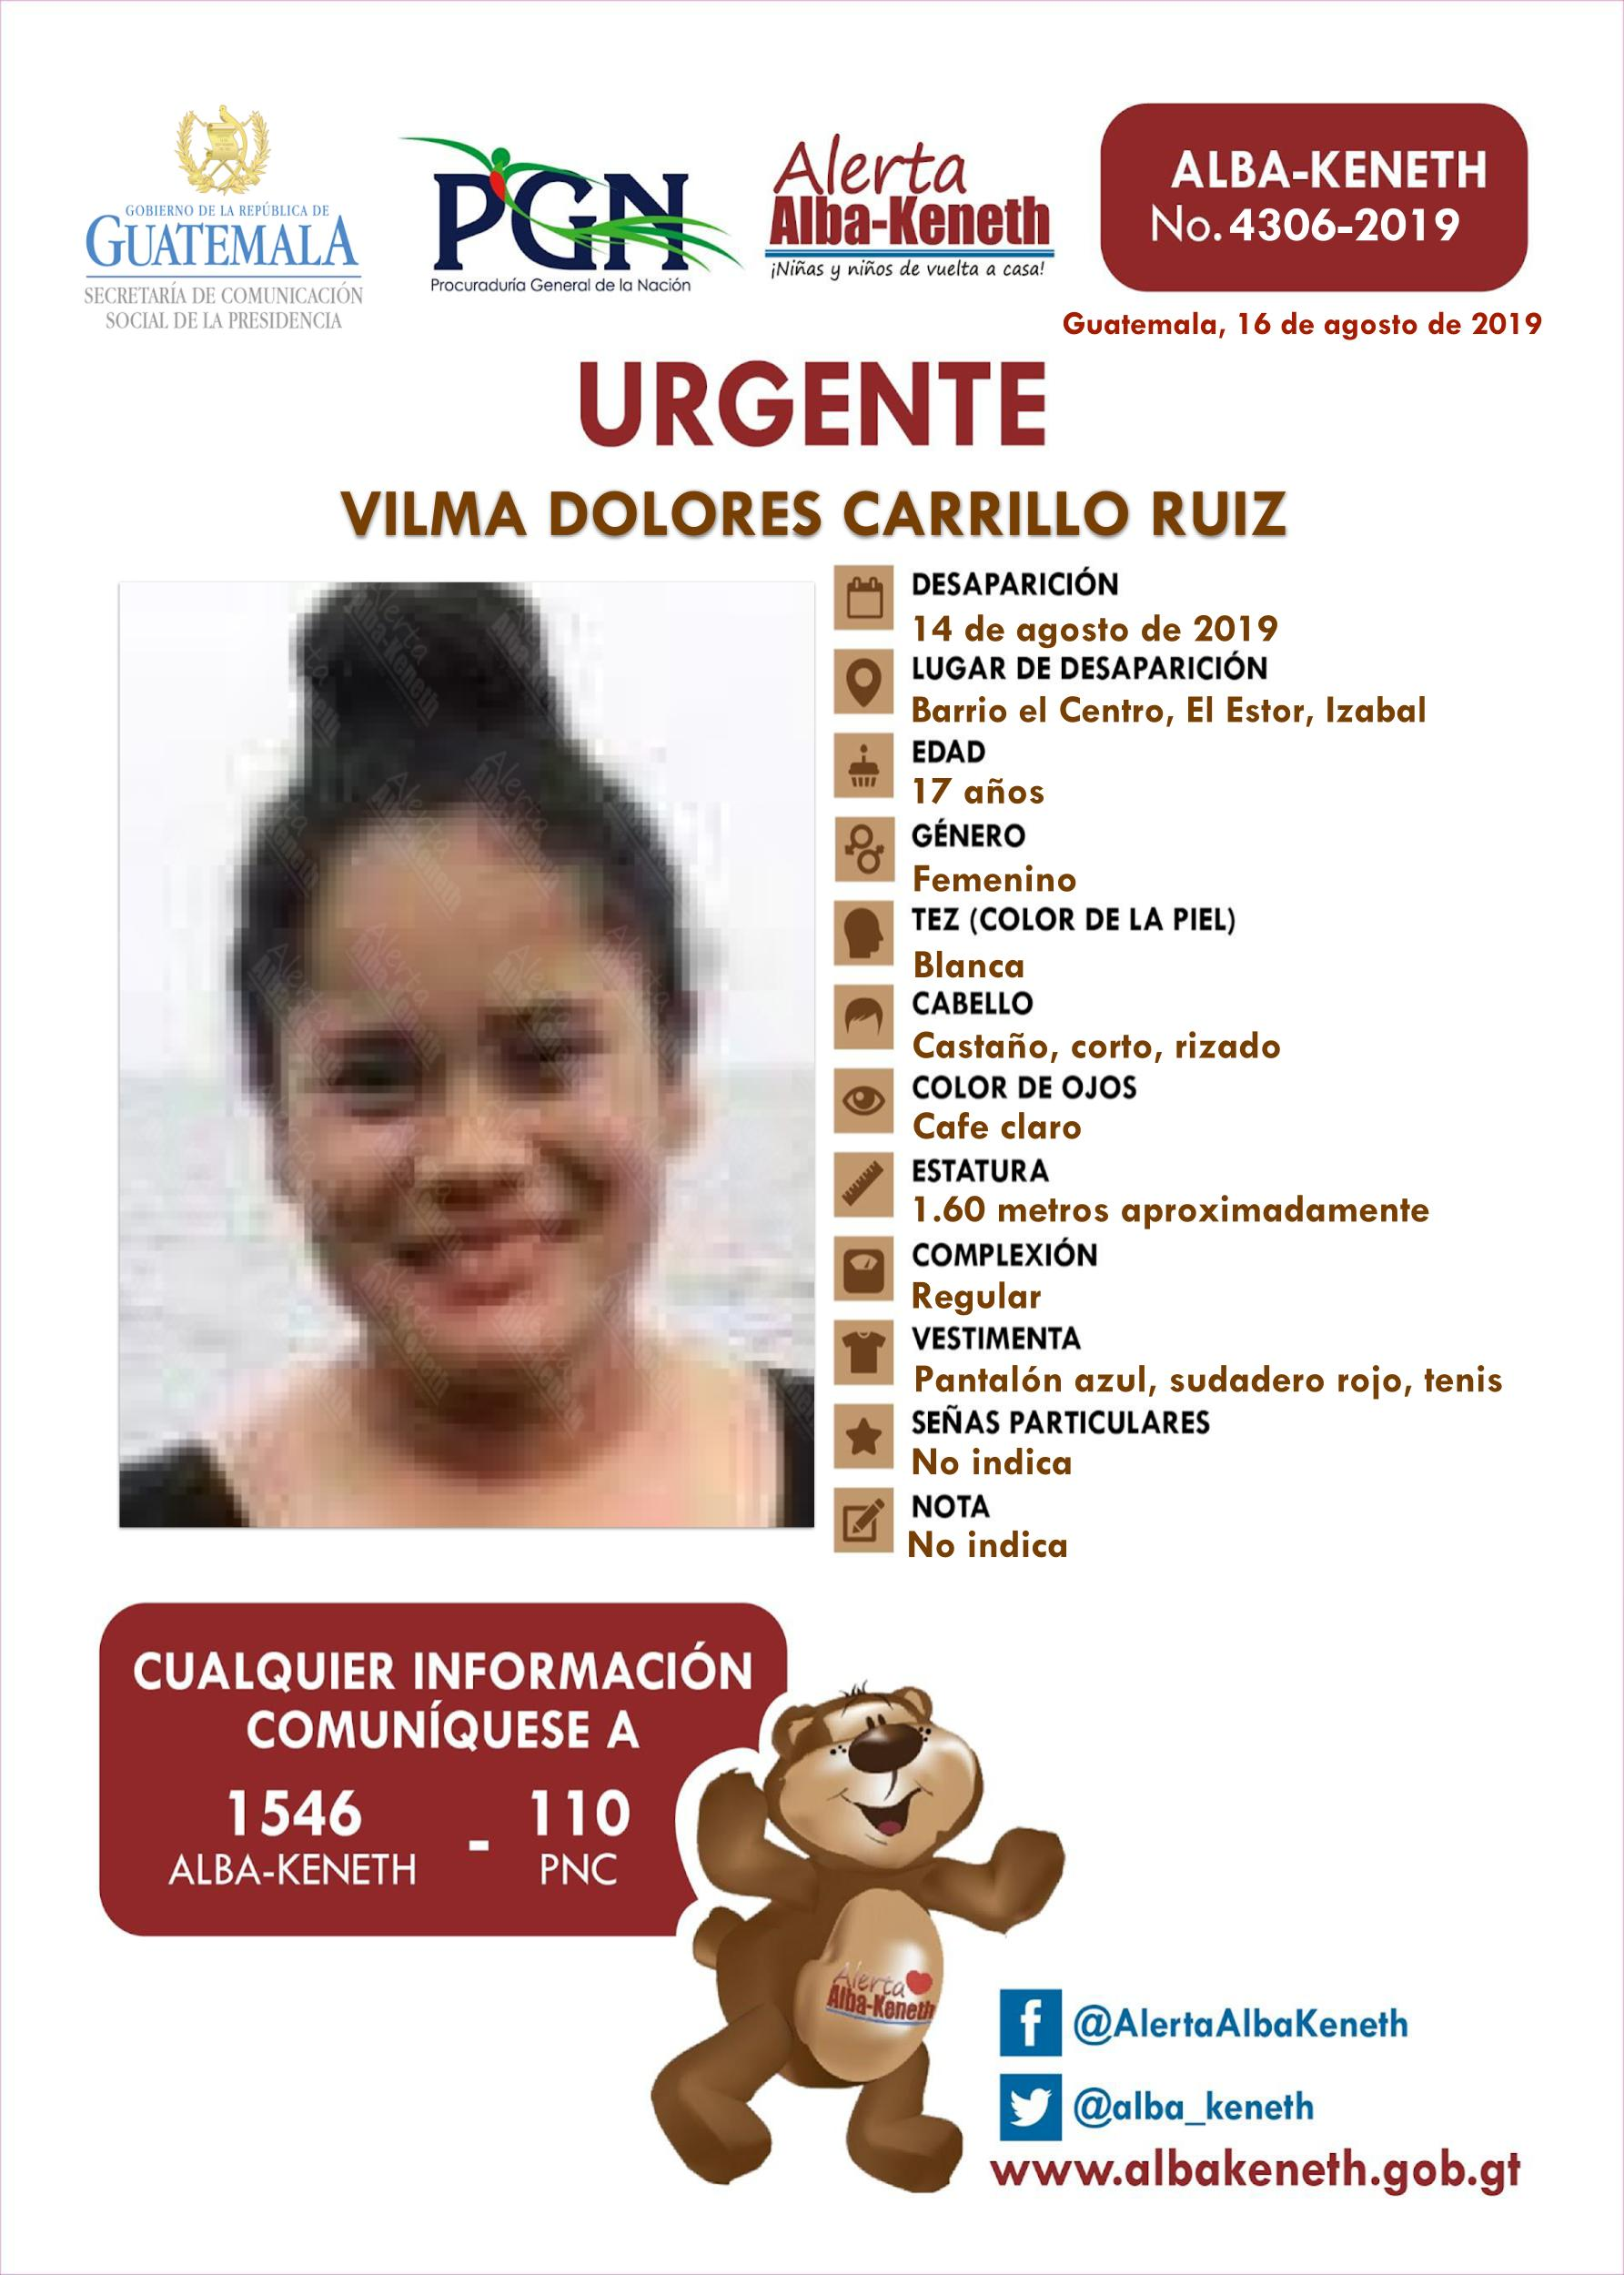 Vilma Dolores Carrillo Ruiz